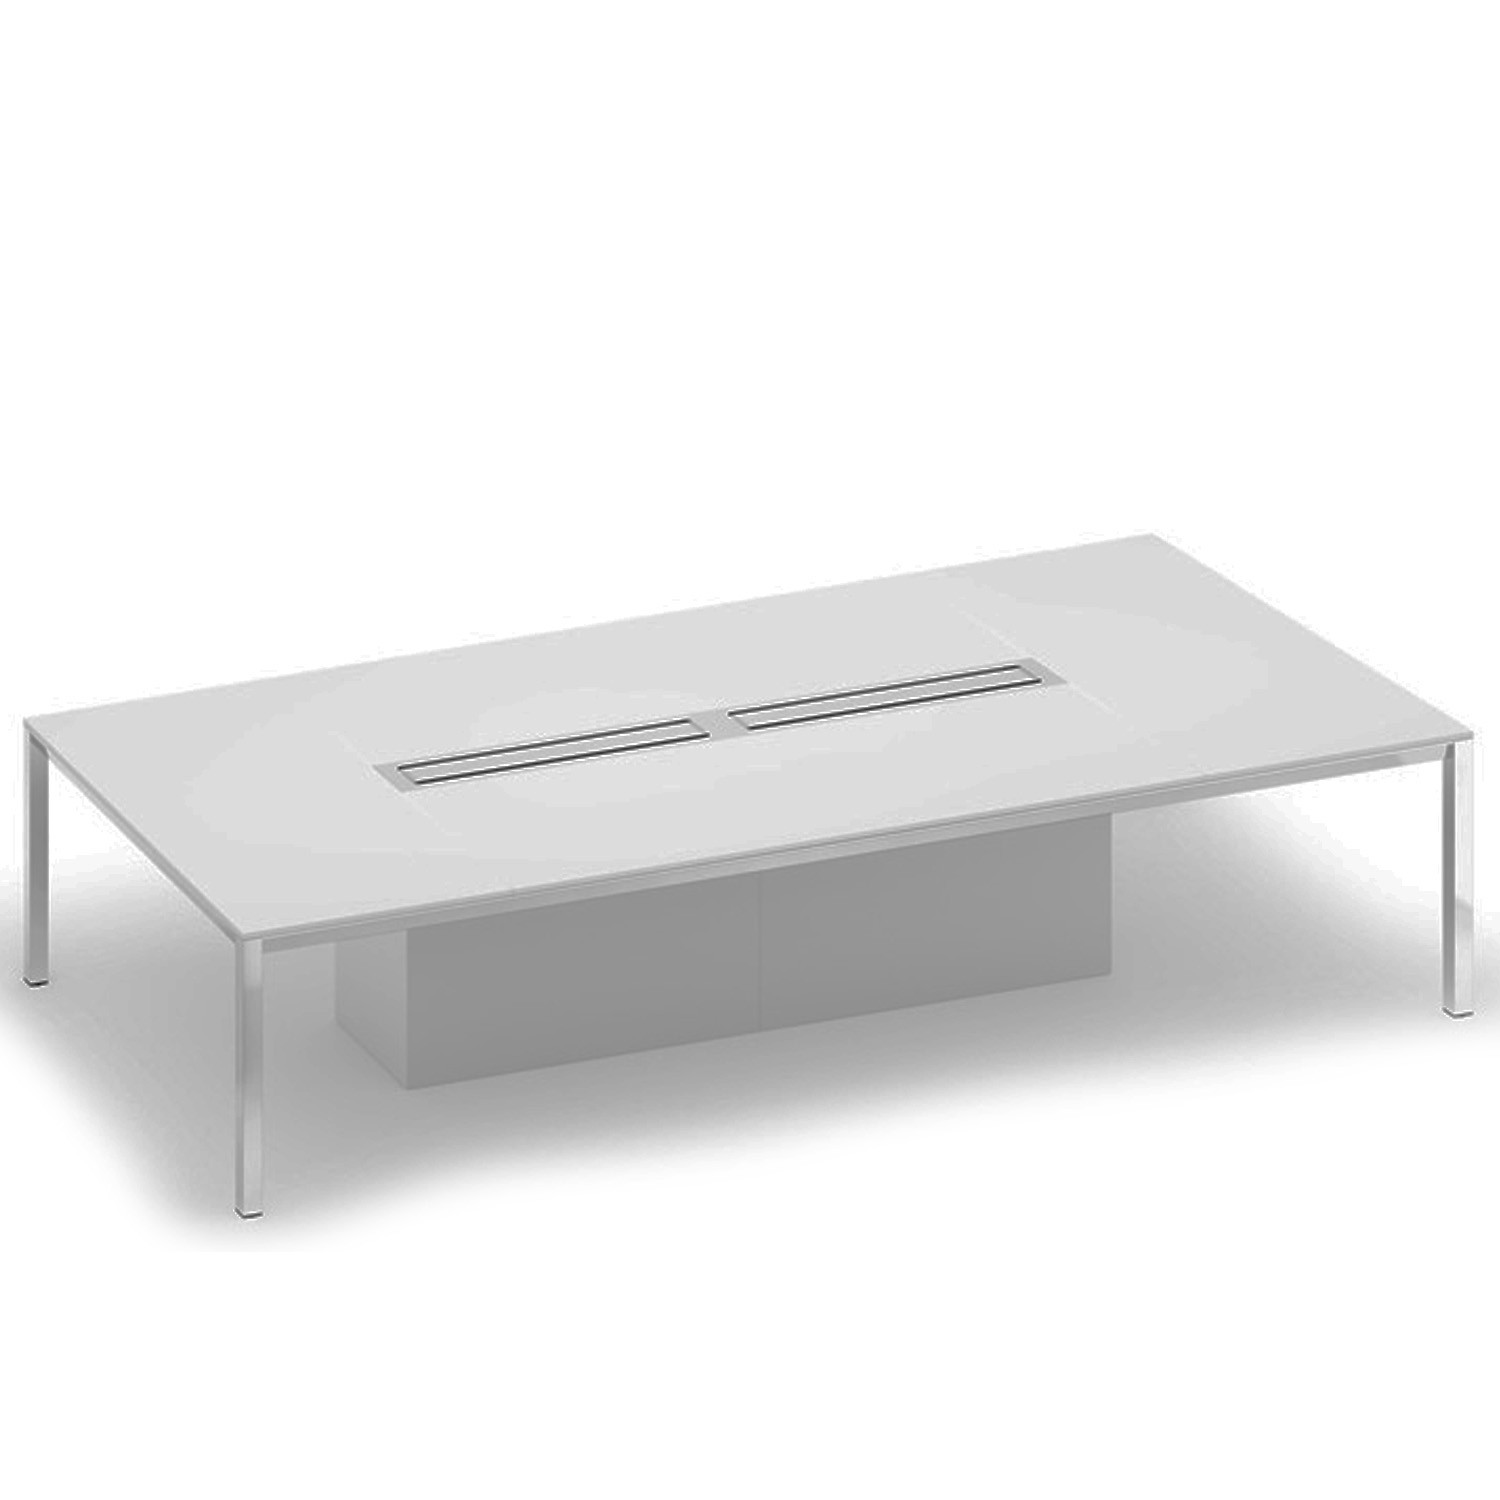 P50 Meeting Table